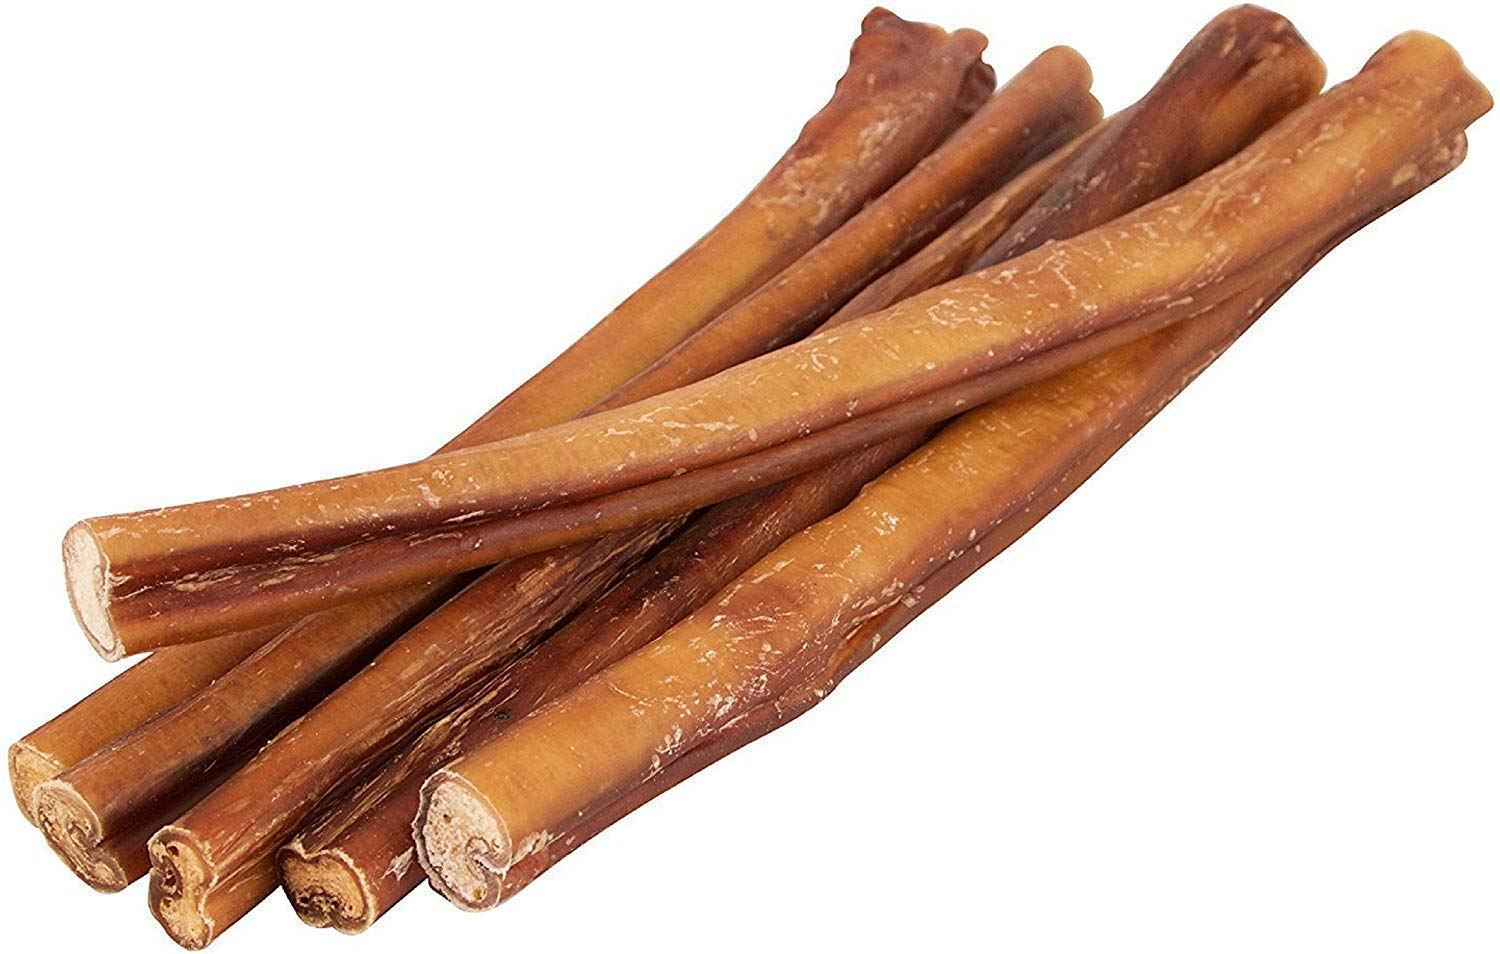 12'' Straight Bully Sticks for Dogs [Large Thickness] (10 Pack) - All Natural & Odorless Bully Bones | Long Lasting Chew Dental Treats | Best Thick Bullie Sticks for K9 or Puppies | Grass-Fed Beef by Pawstruck